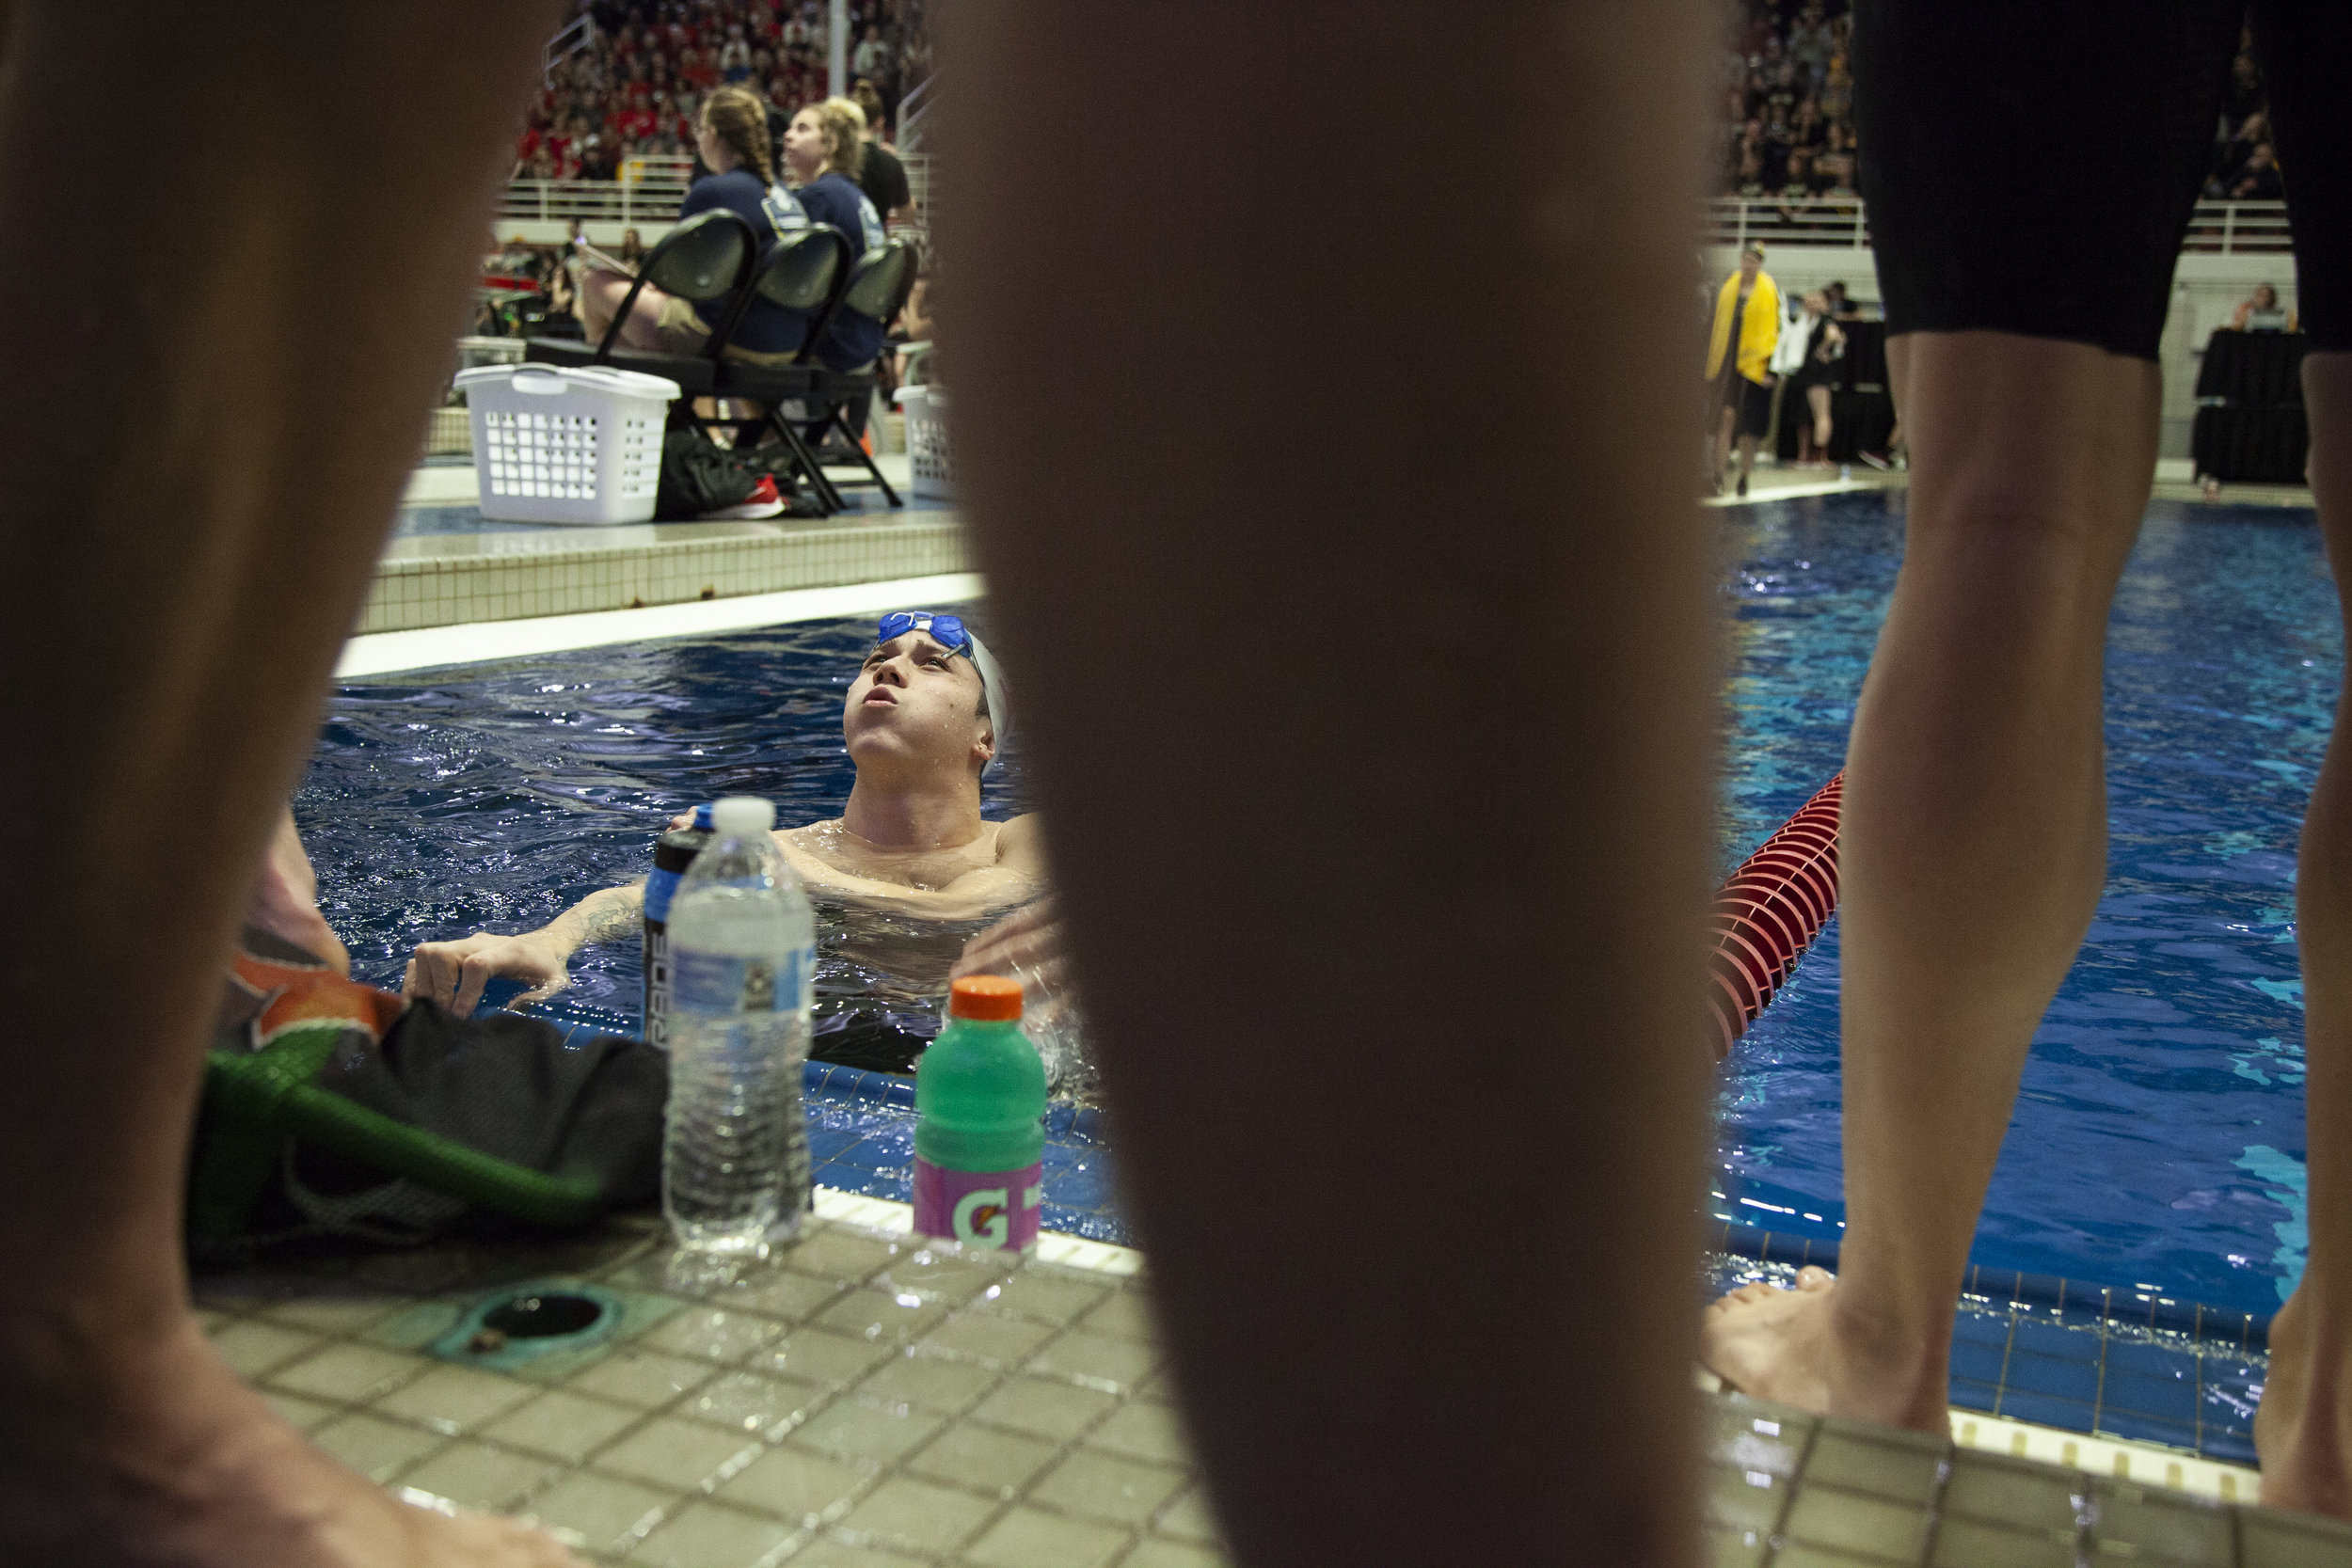 A member of the Tennessee Men's Swimming & Diving Team reacts to their teammates' times after a relay on the final day of competition at the Swimming & Diving SEC Championship at Gabrielson Natatorium in Athens, Georgia, on Saturday, February 23, 2019.